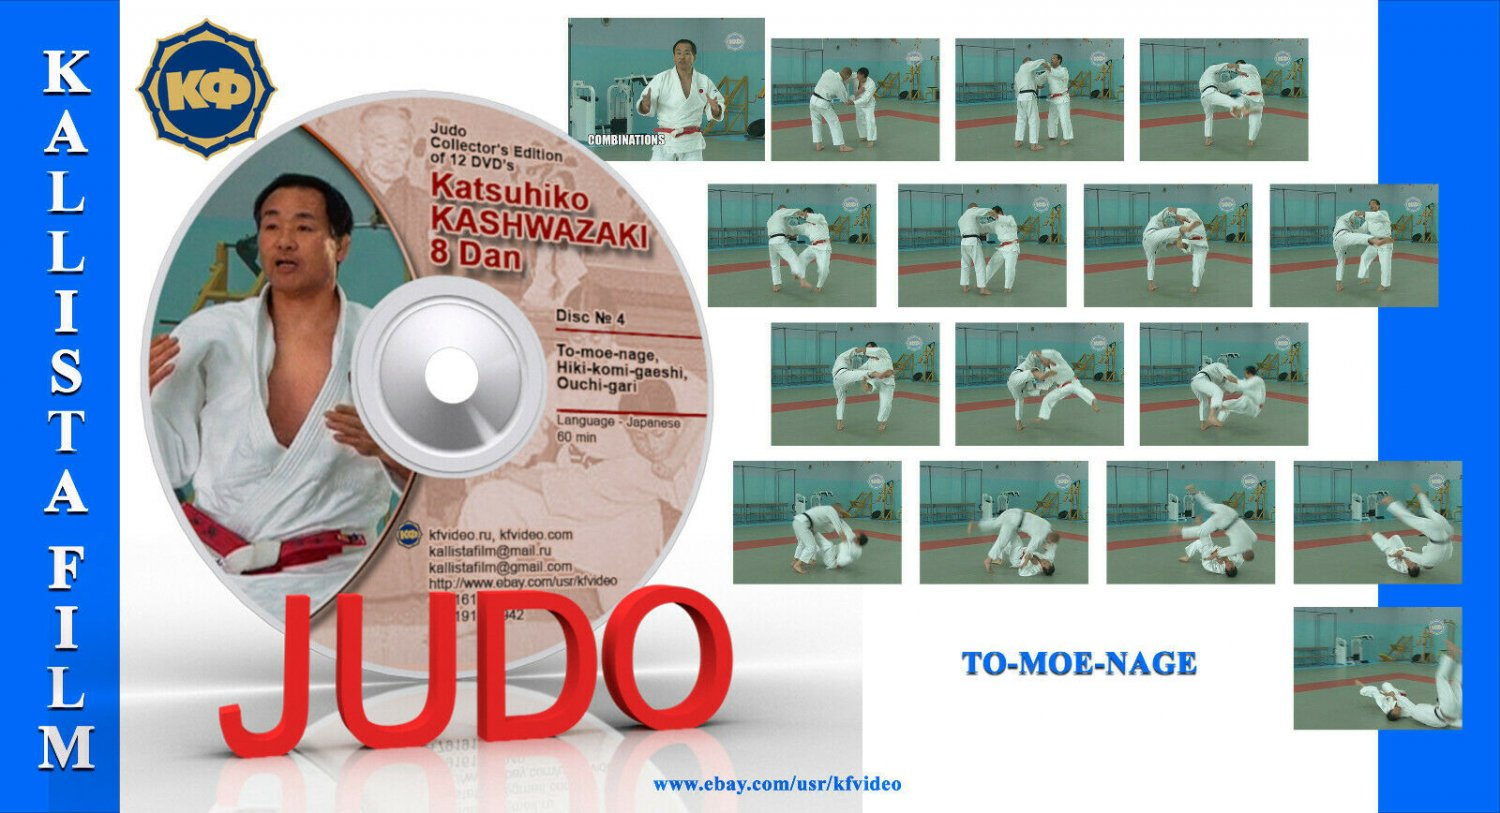 Judo. Stars of the Japanese judo Katsuhiko Kashiwazaki 8 dan (Disc only).